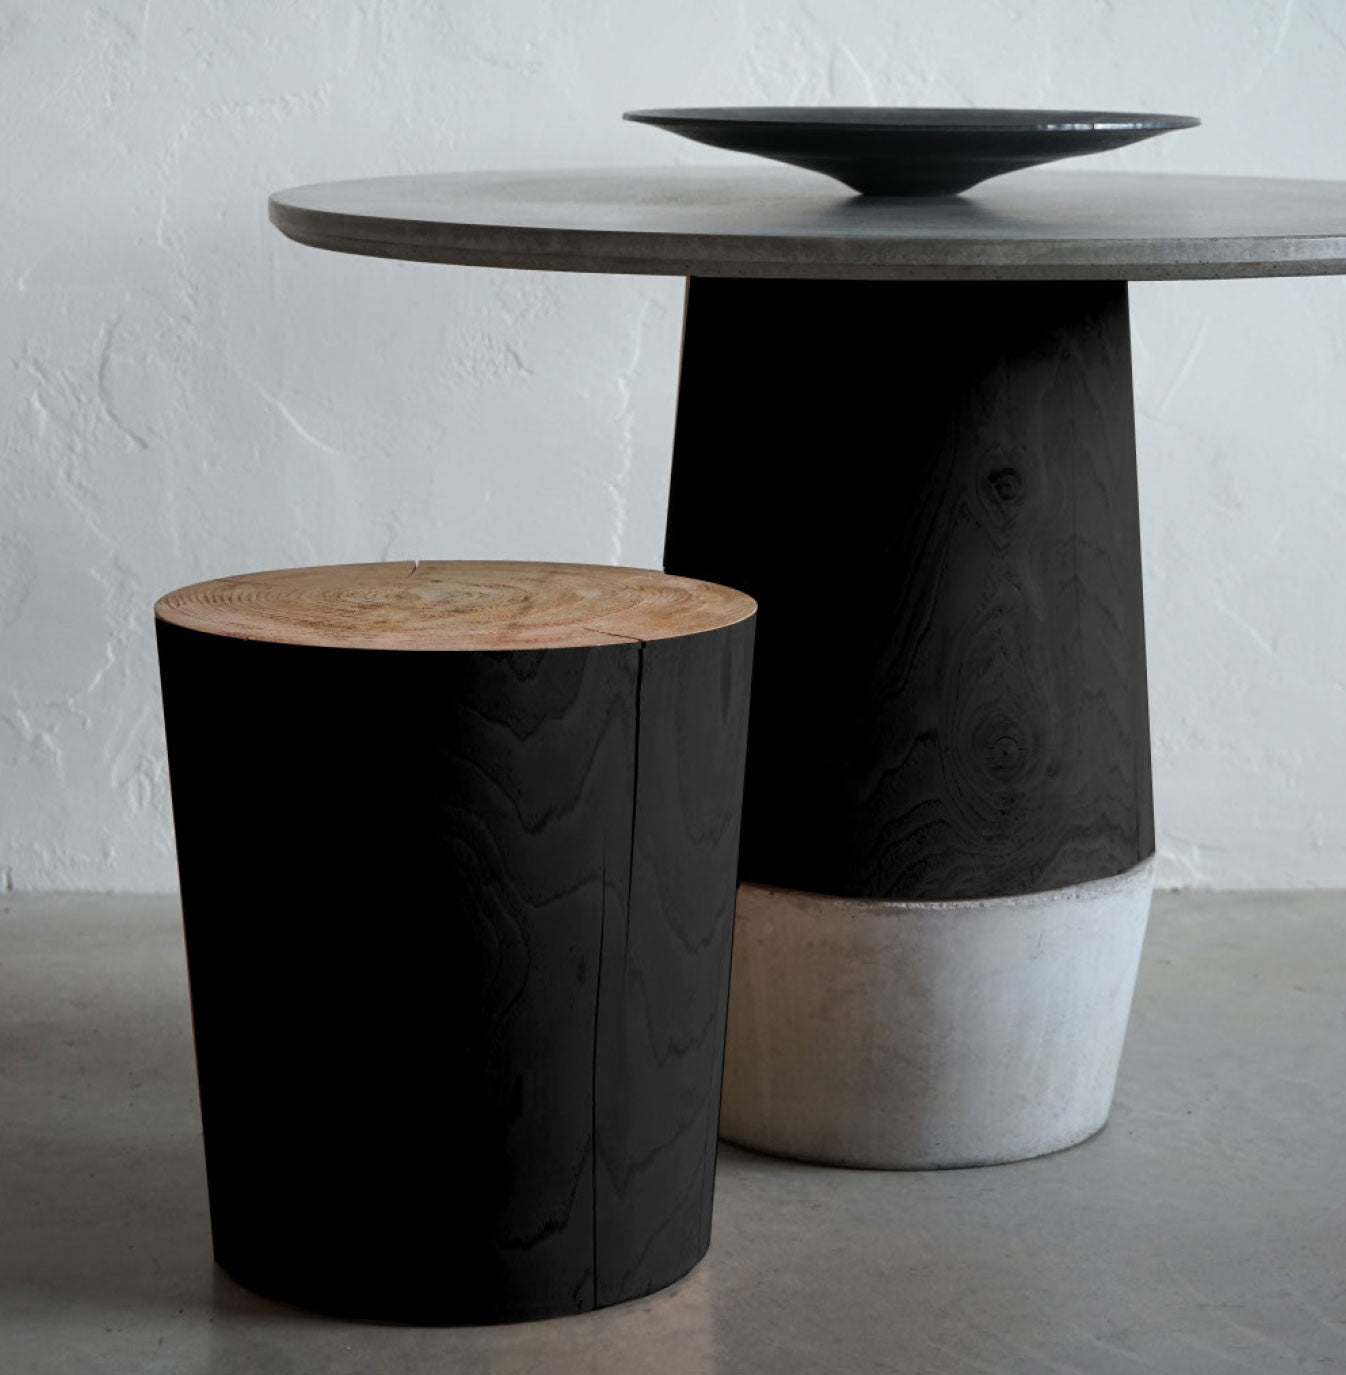 Revolve Table Series